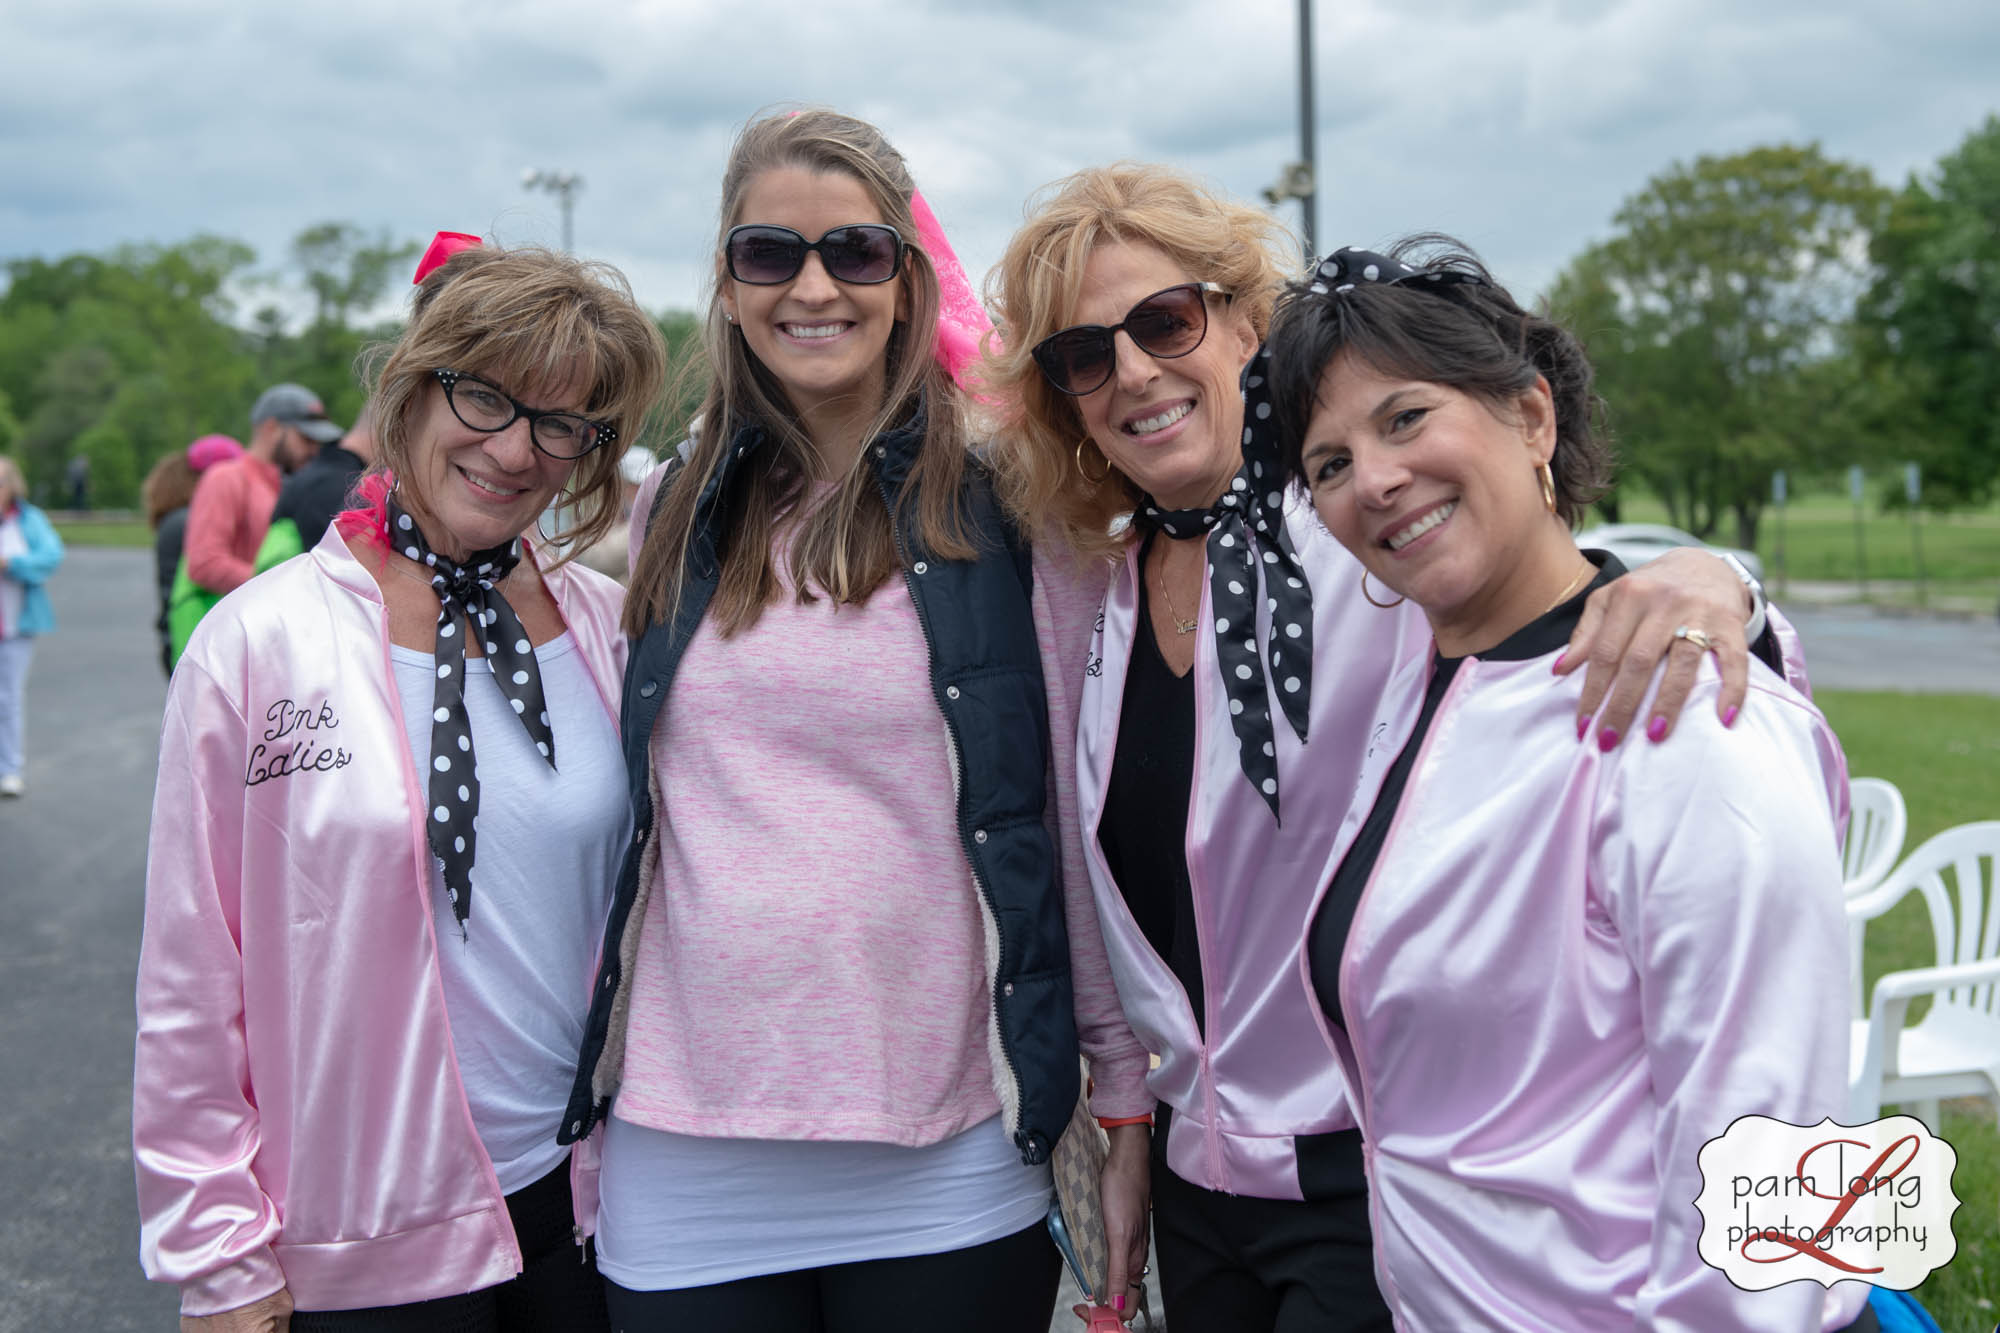 Pam Long Photography Blossoms of Hope Blossoms Pink Greens Golf Classic-1.jpg